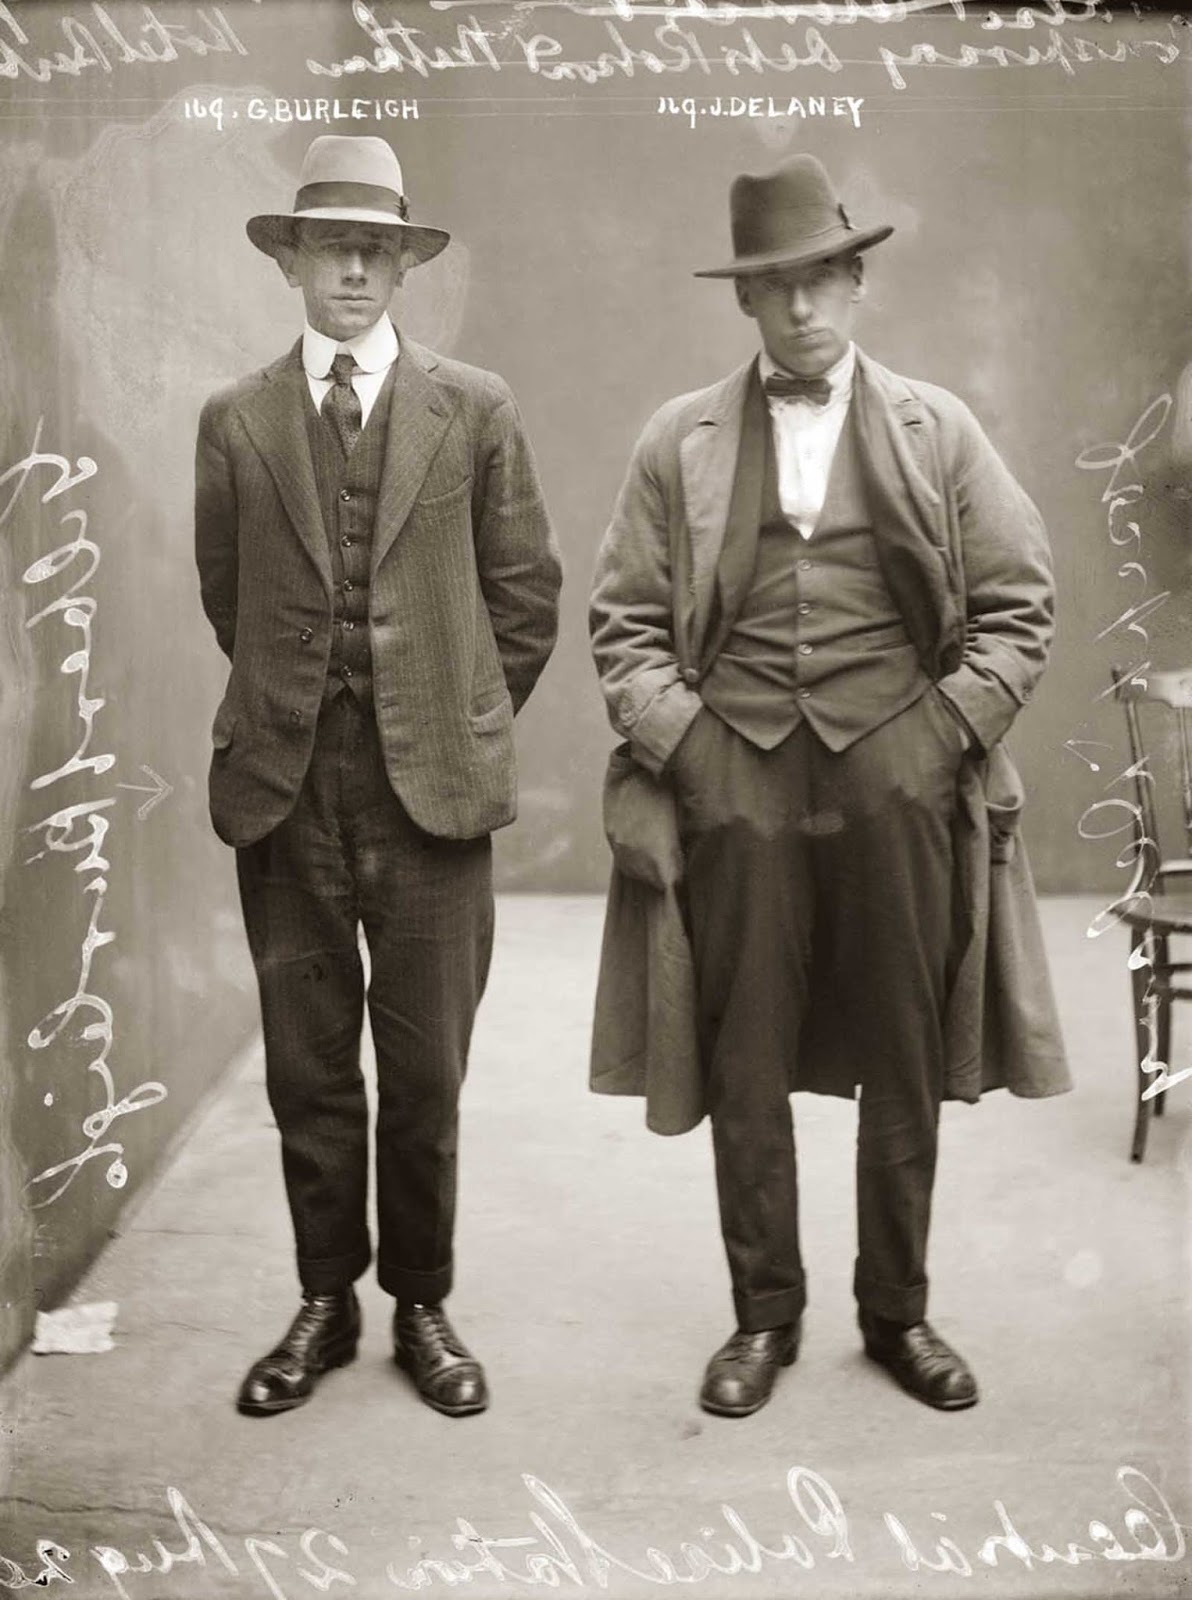 Gilbert Burleigh and Joseph Delaney. 1920.